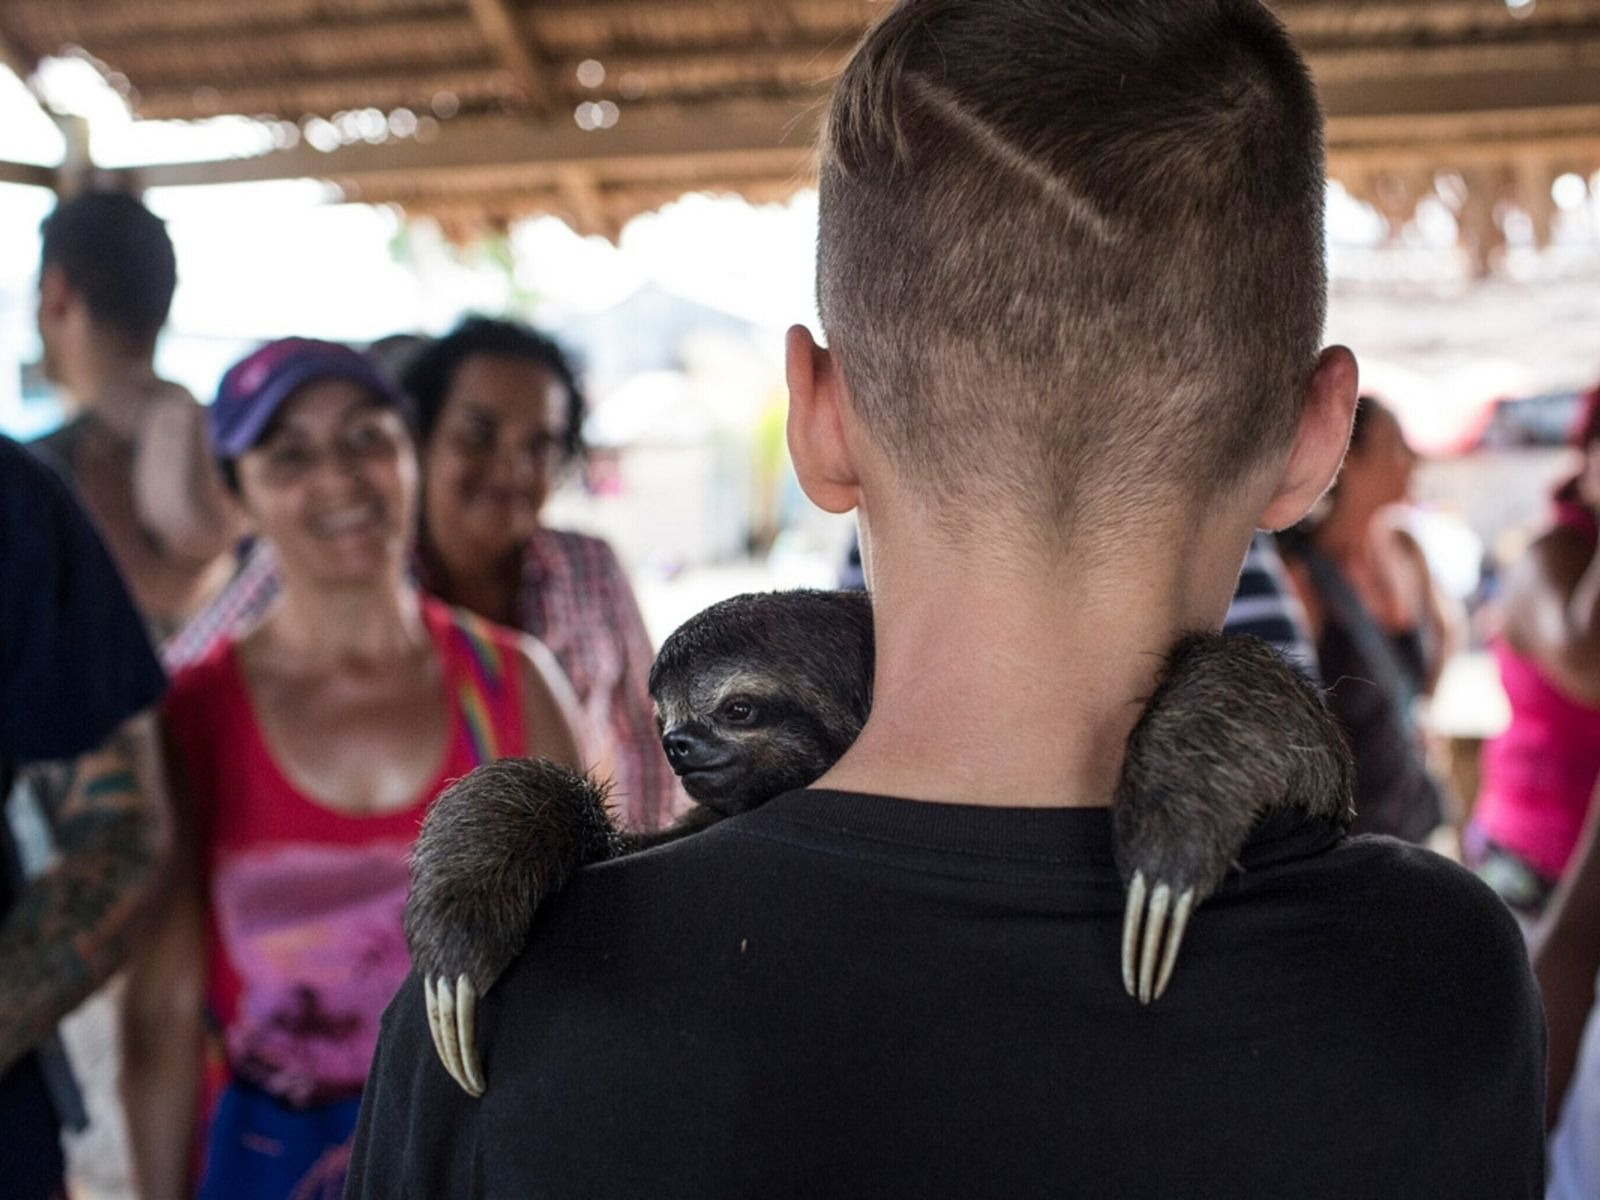 Boy With Sloth - Social Media and Wildlife Trafficking